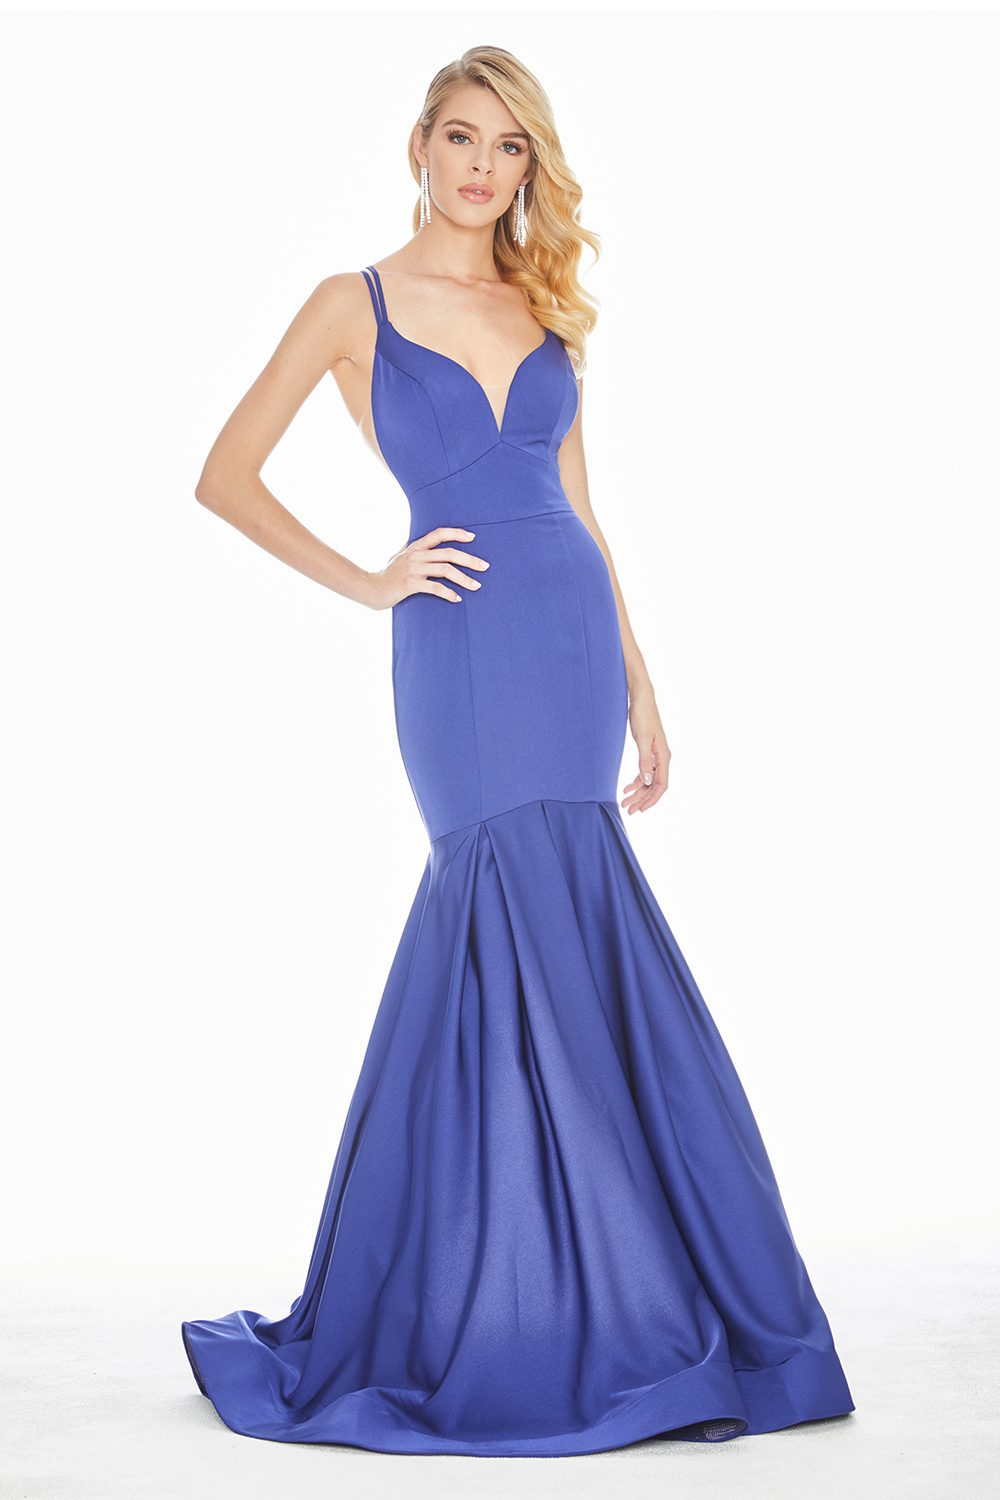 Ashley Lauren 1532 Mermaid Formal Dress front